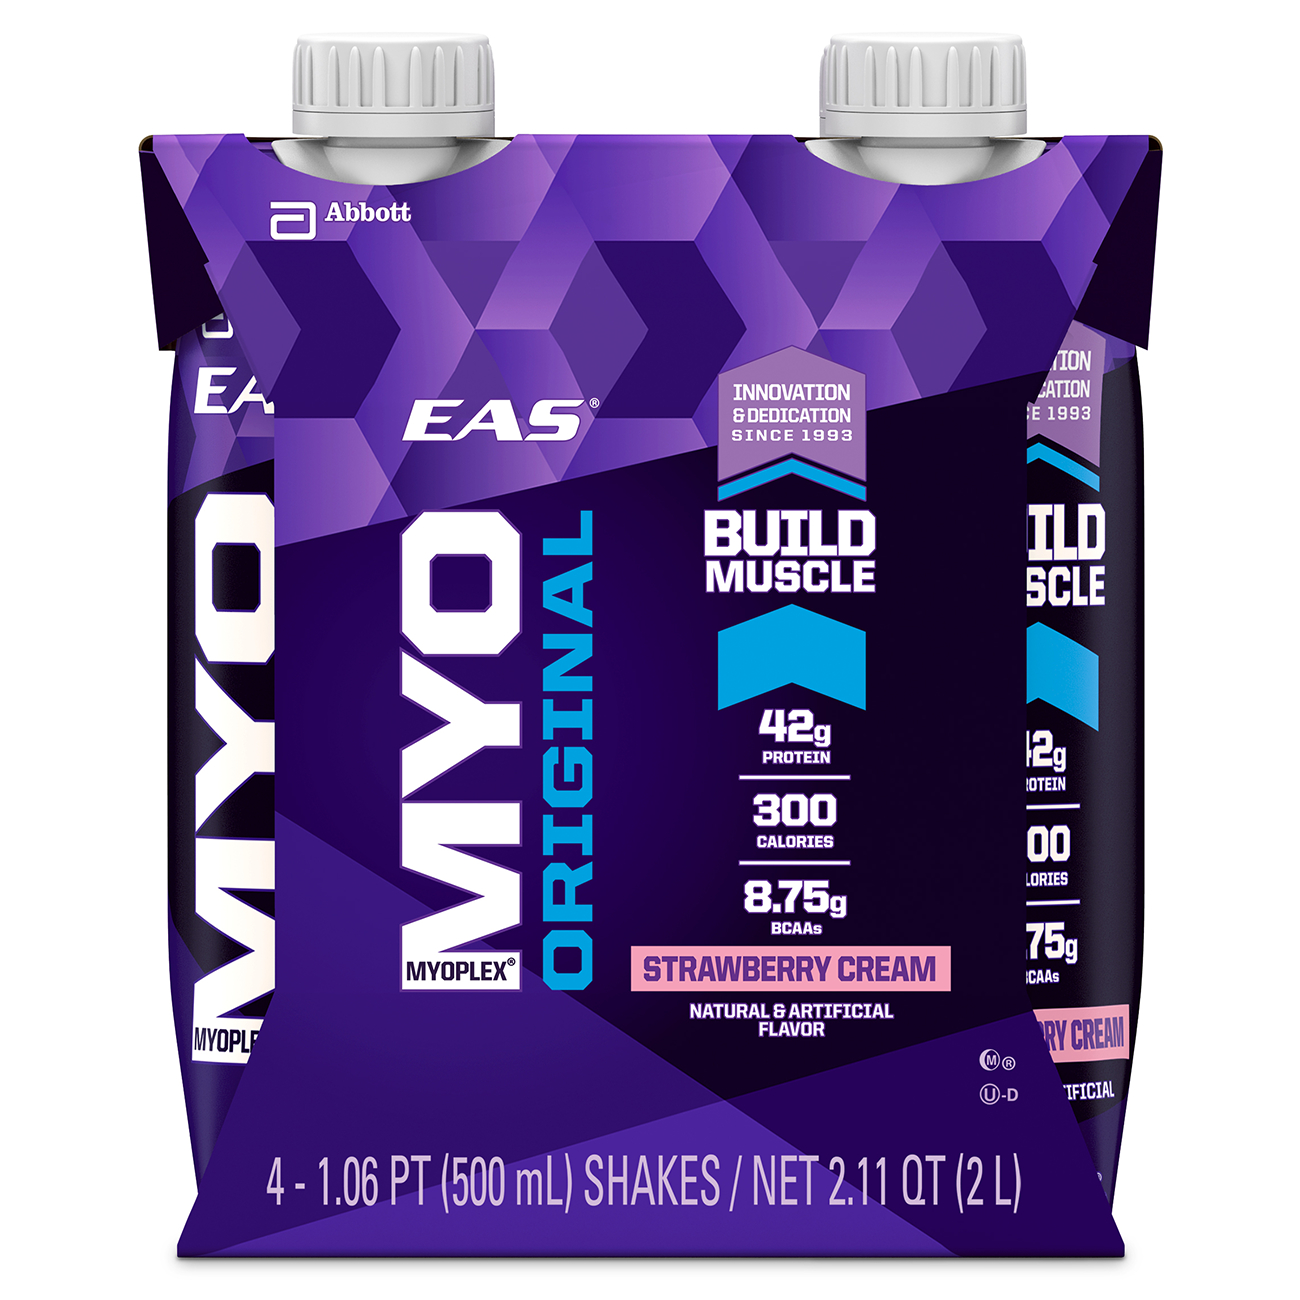 EAS Myoplex Original Ready-to-Drink Nutrition Shake, Strawberry Cream, 500 mL, (3-4 Packs)